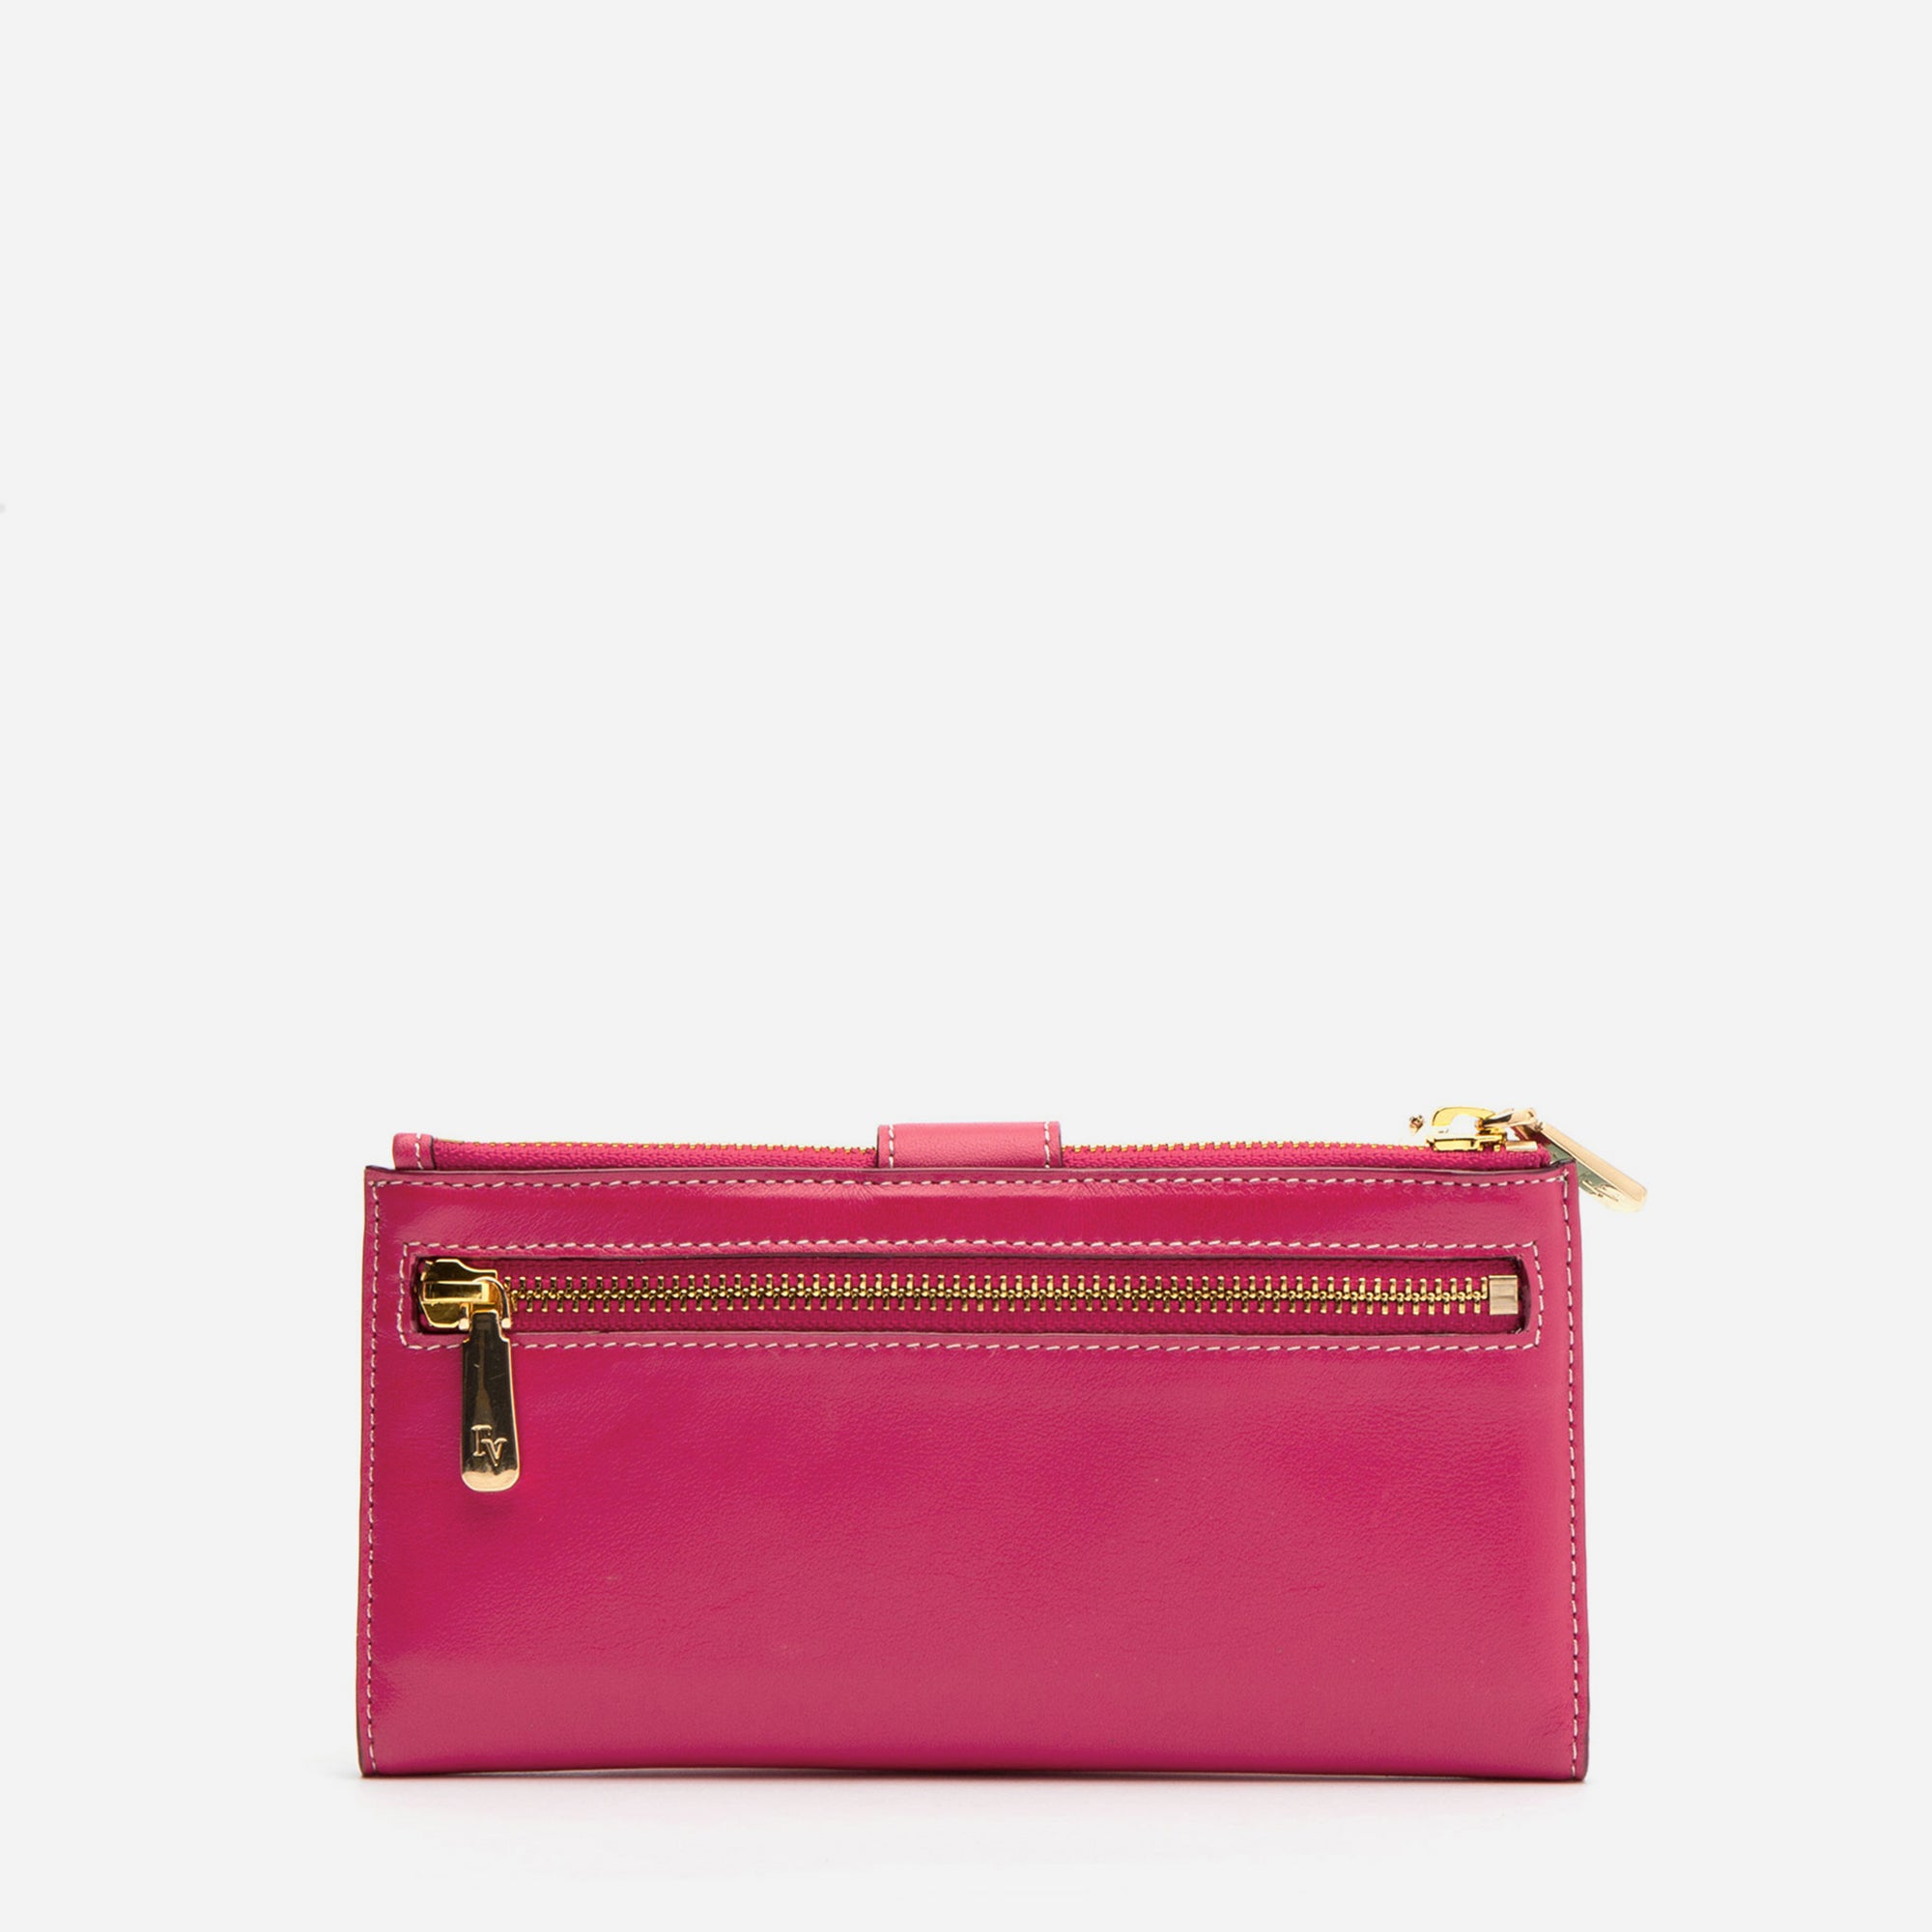 Sacagawea Snap Wallet Pink Red